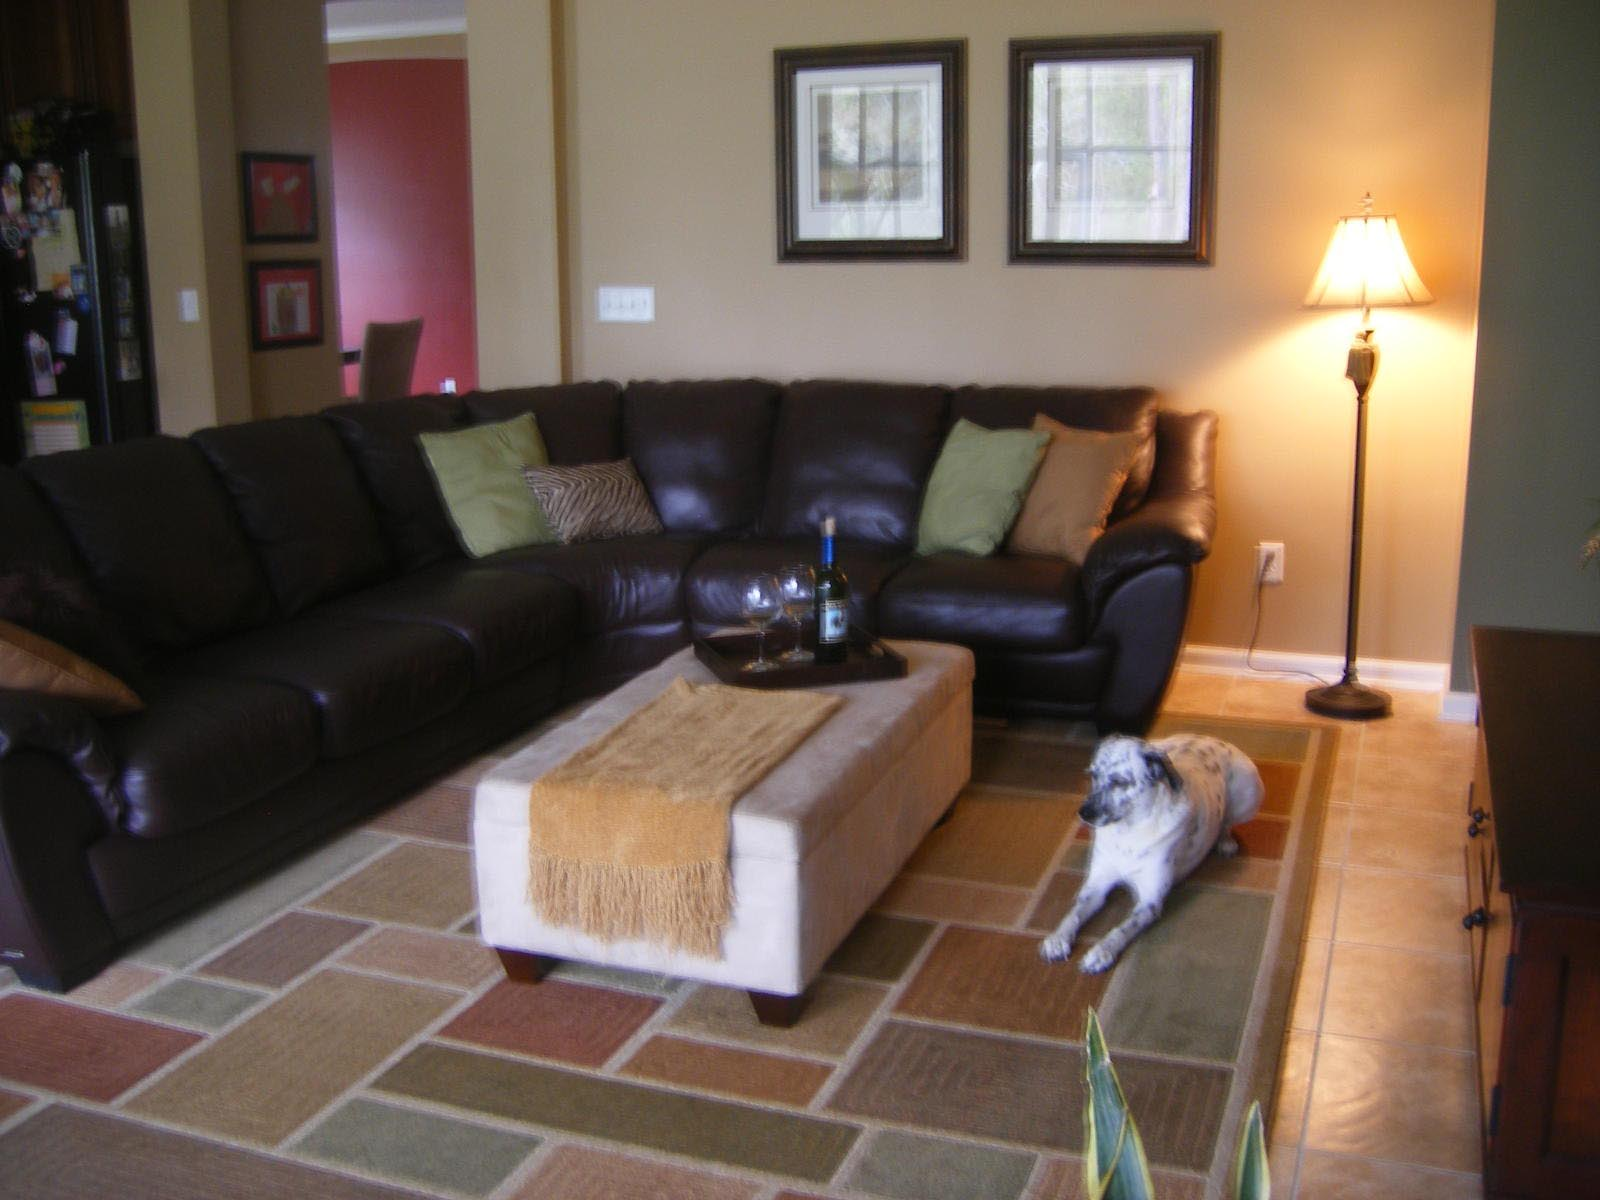 Throw Pillows For A Brown Leather Couch : Accent Pillows For Brown Leather Sofa - Sofa Ideas